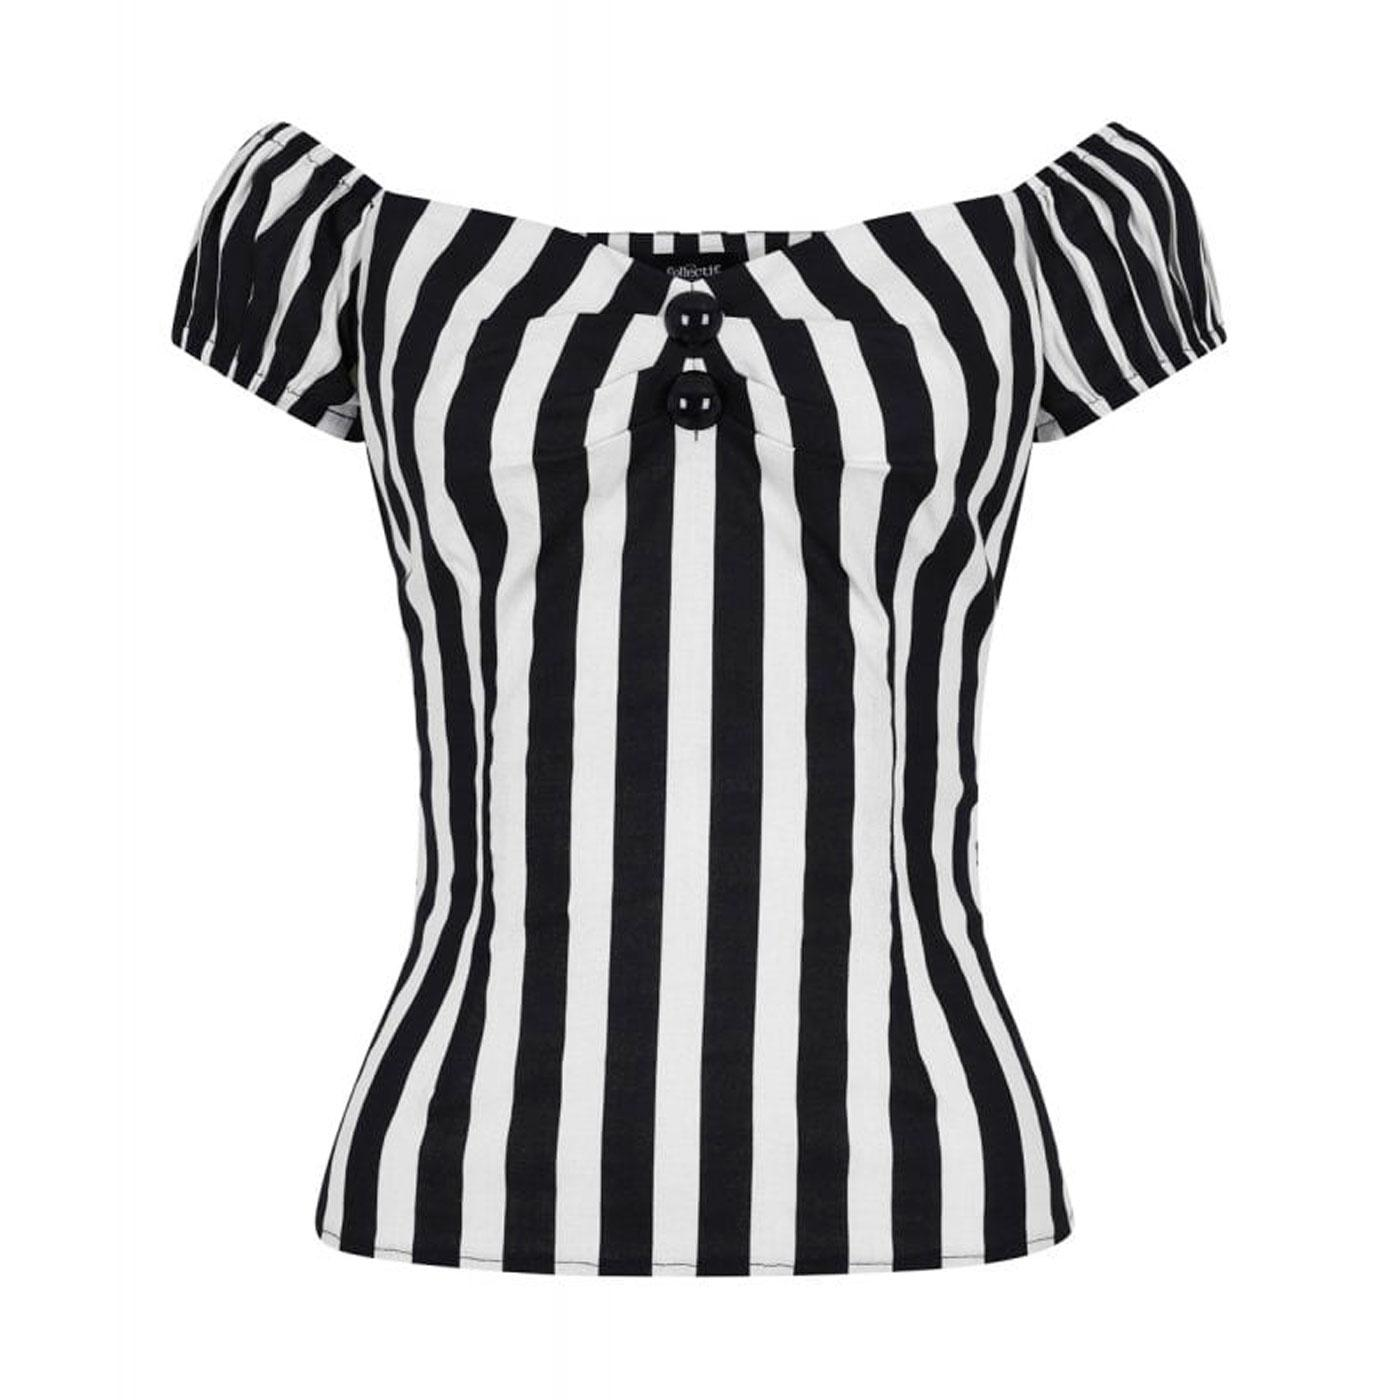 Dolores COLLECTIF Vintage Striped Top Black/White